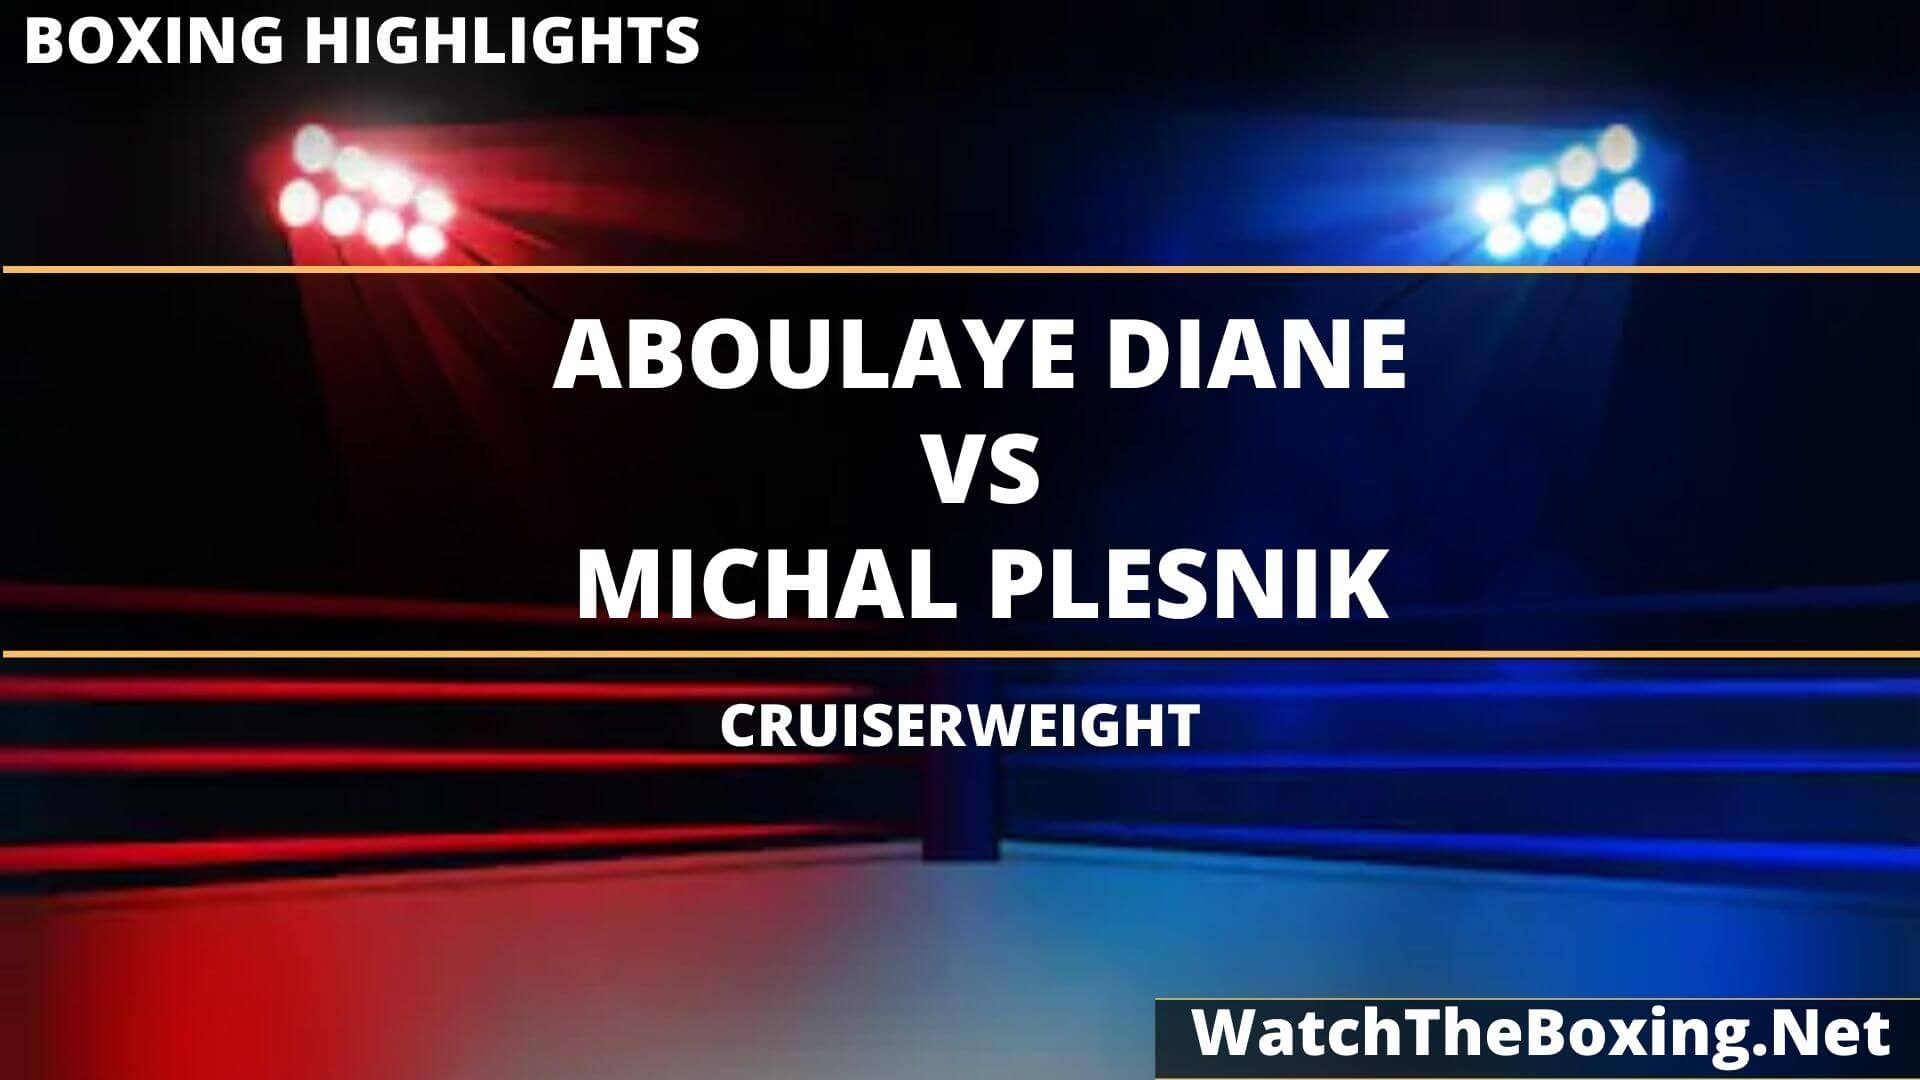 Aboulaye Diane Vs Michal Plesnik Highlights 2020